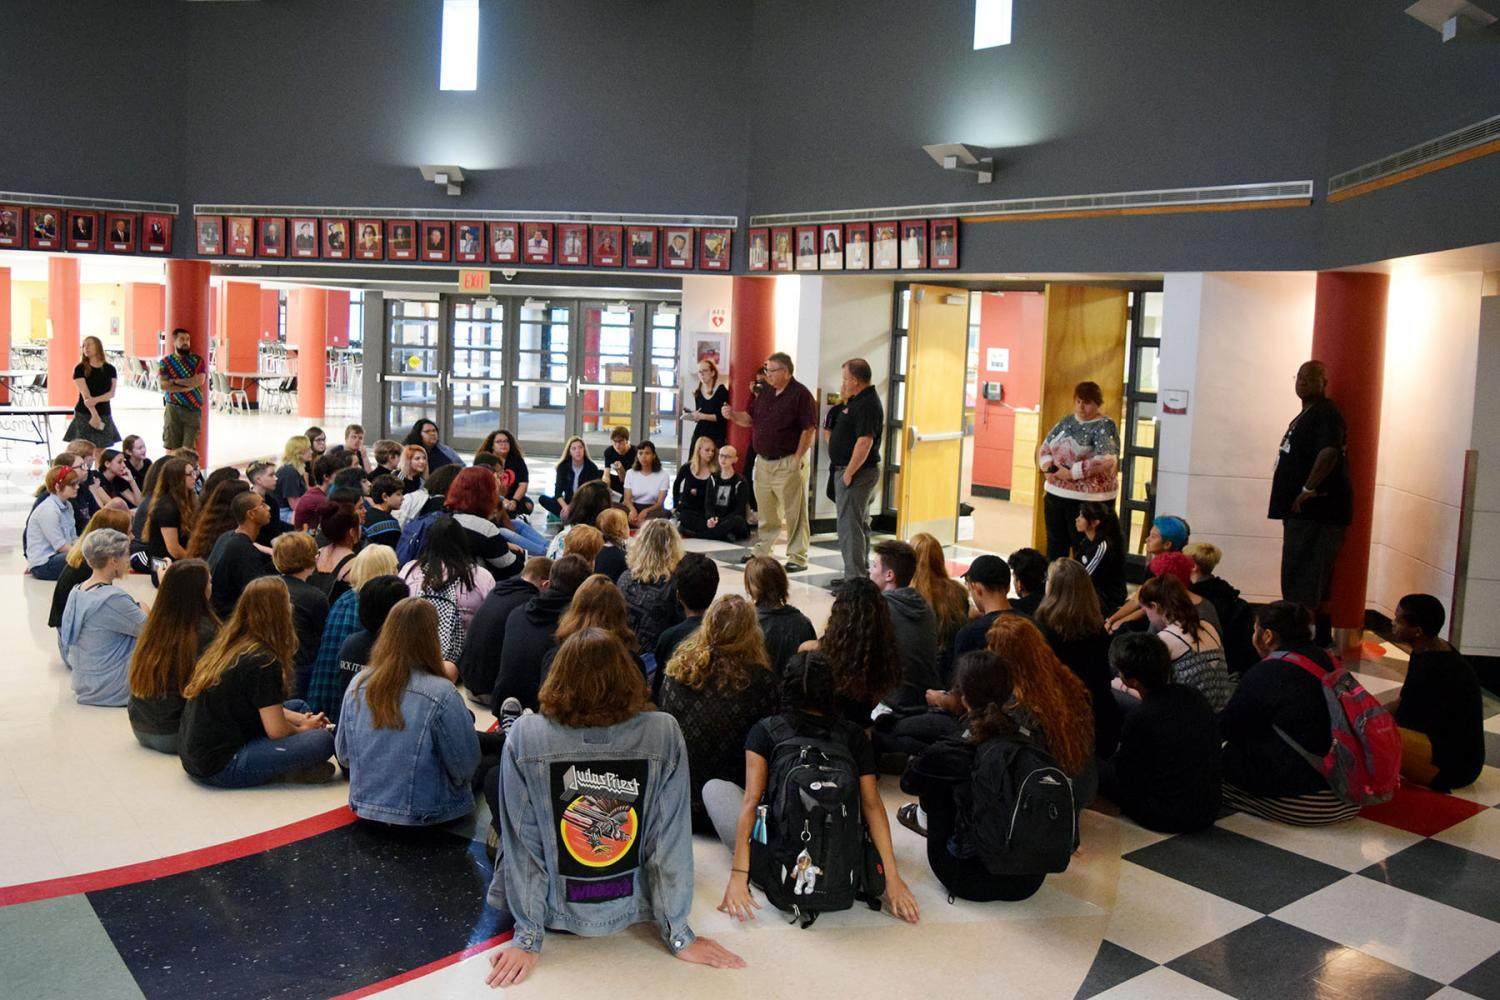 Students+begin+gathering+for+a+sit-in+during+second+hour+on+Monday+in+the+rotunda.+The+crowd+grew+as+the+day+went+on.